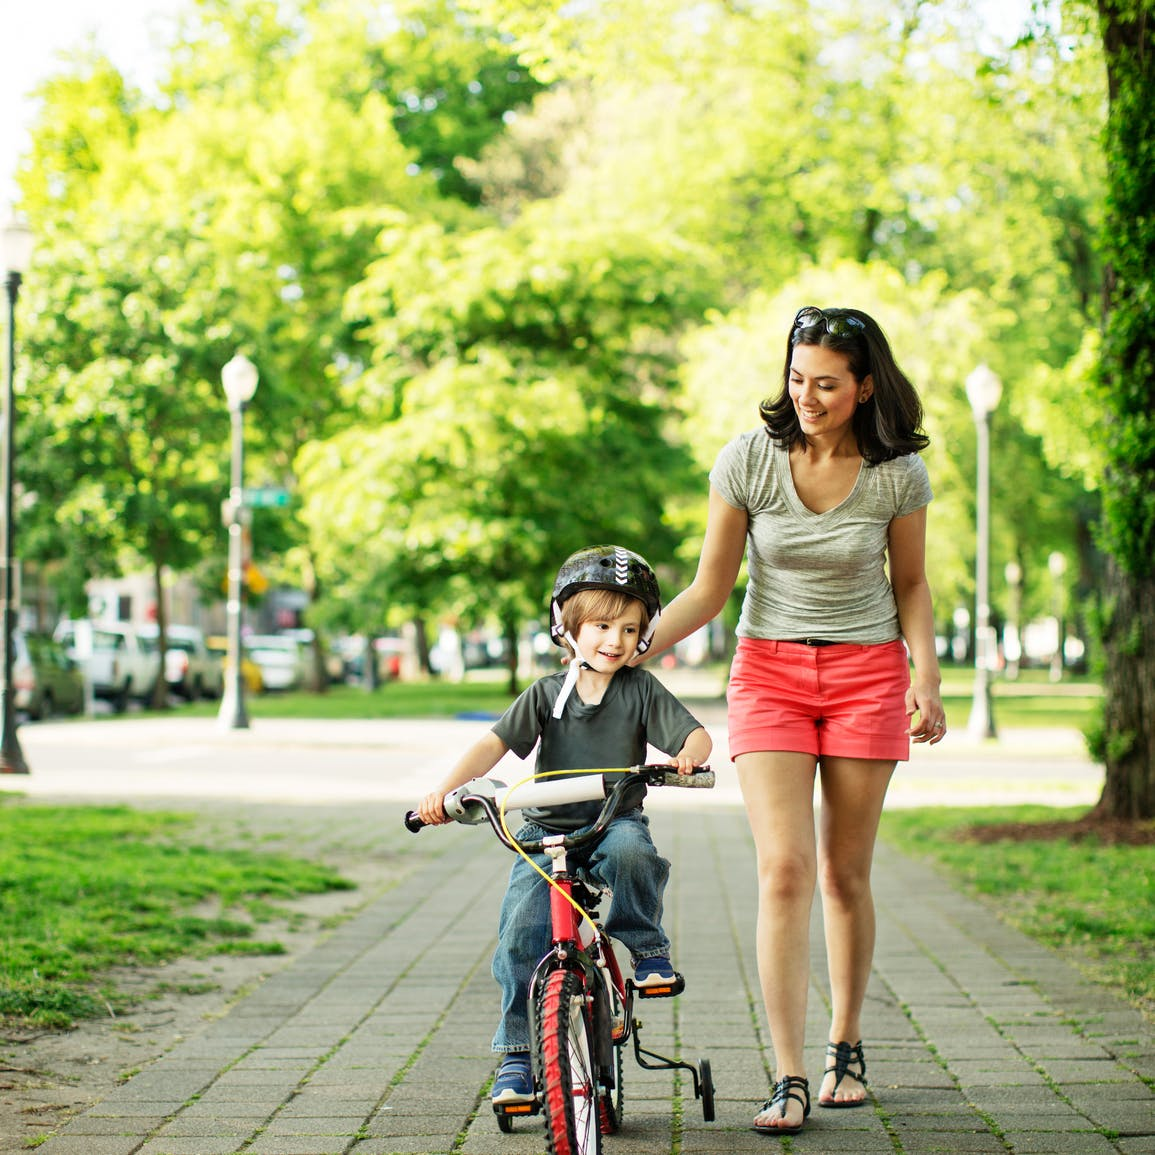 Child riding bicycle with help from mother